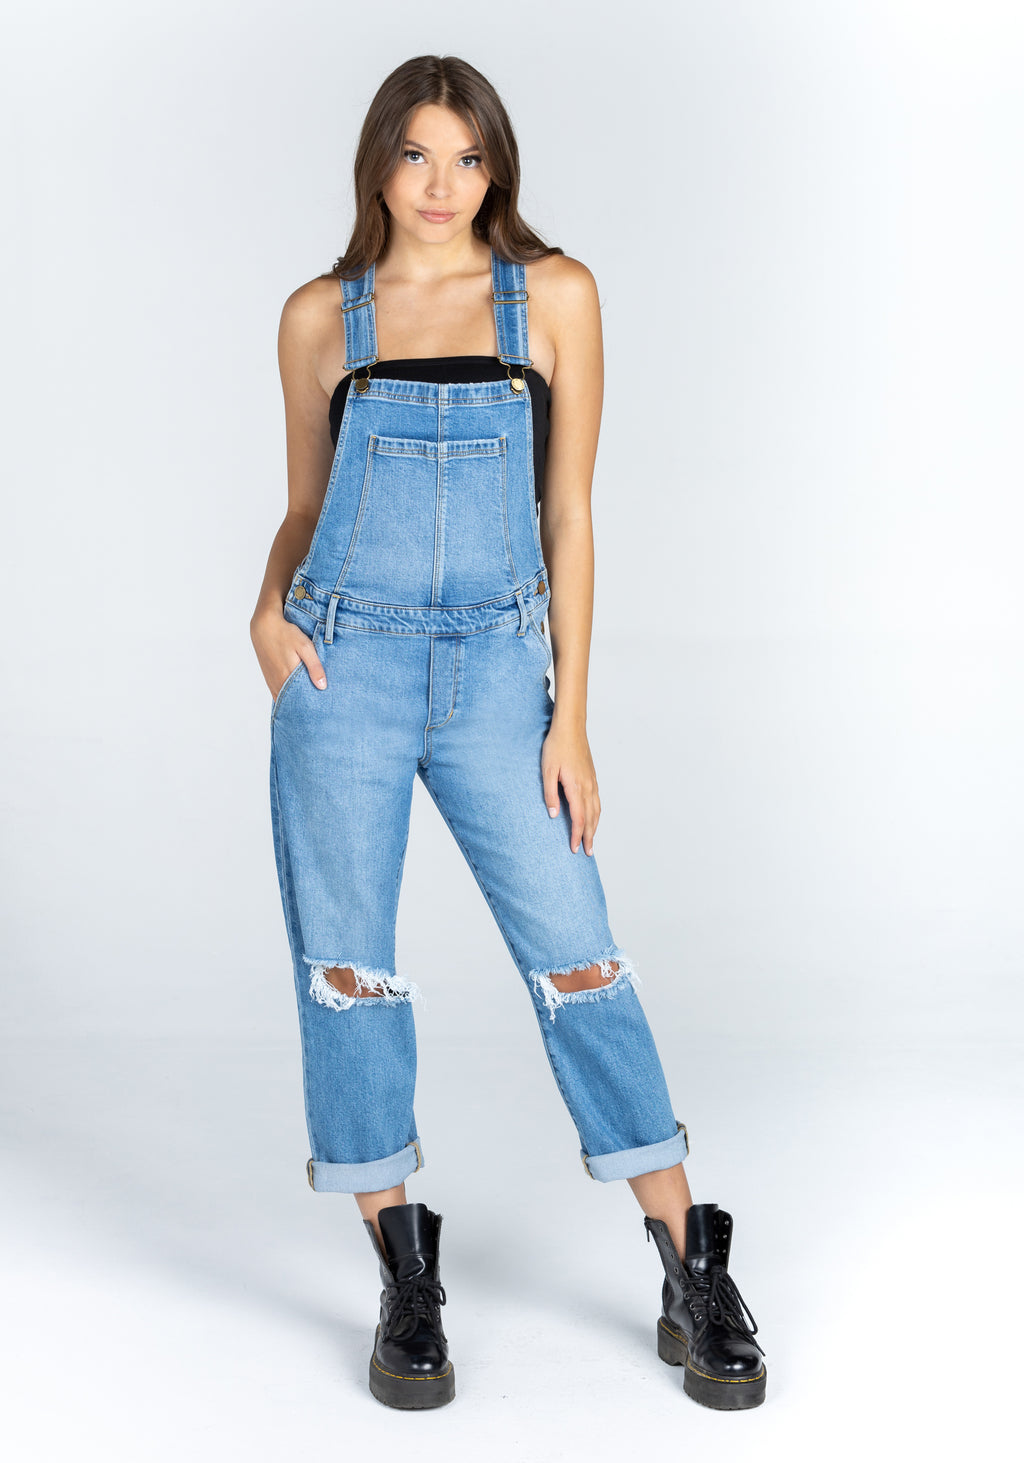 Articles of Society Woodstock Overalls